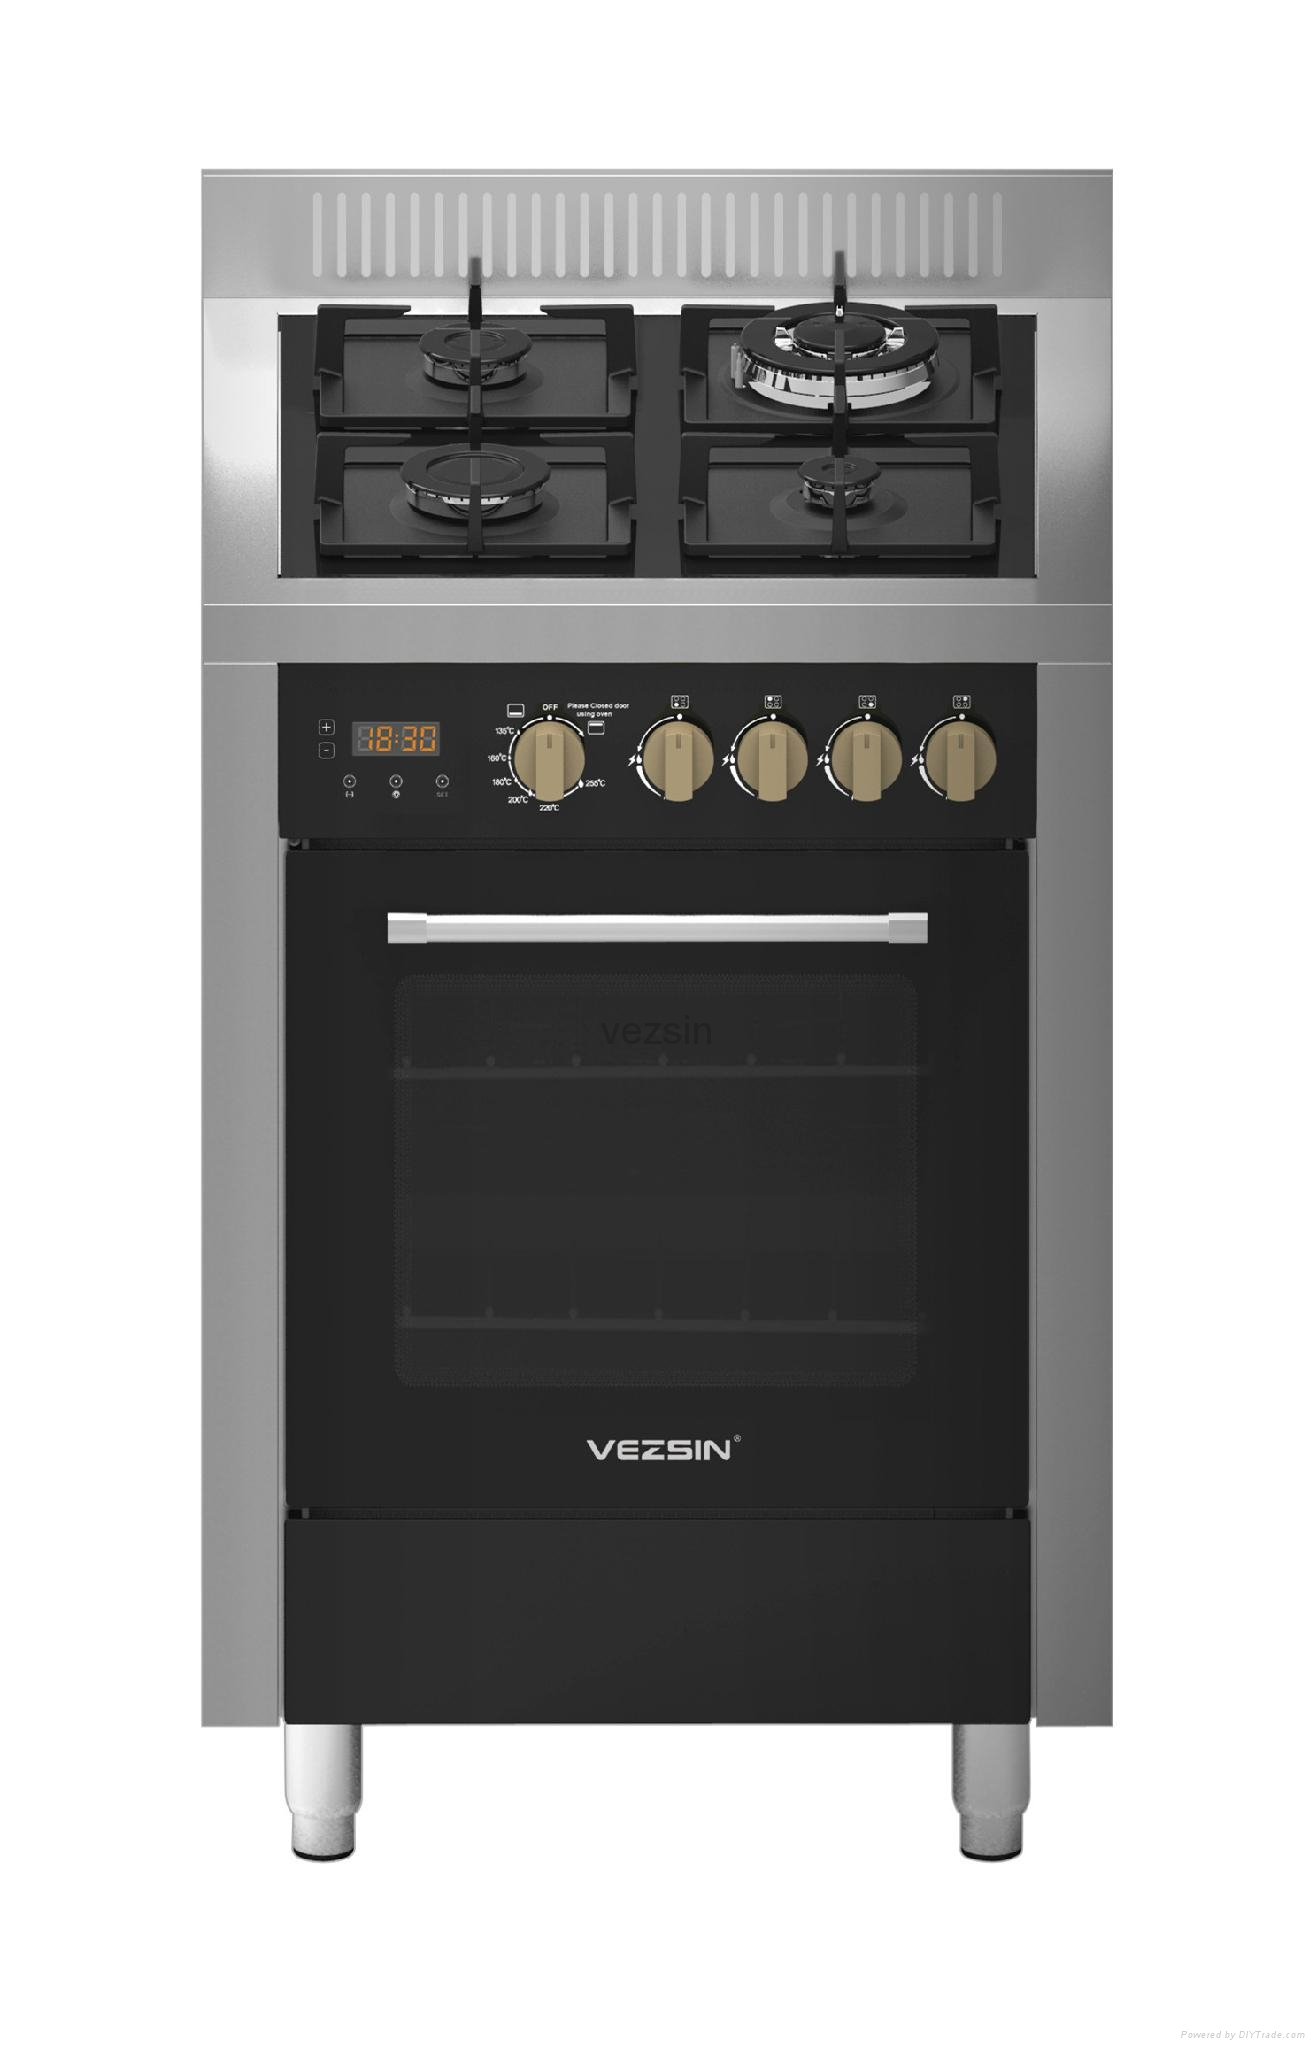 Vezsin 24 Inch Stainless Steel Free Standing Gas Cooker with Oven (G24D05) 1